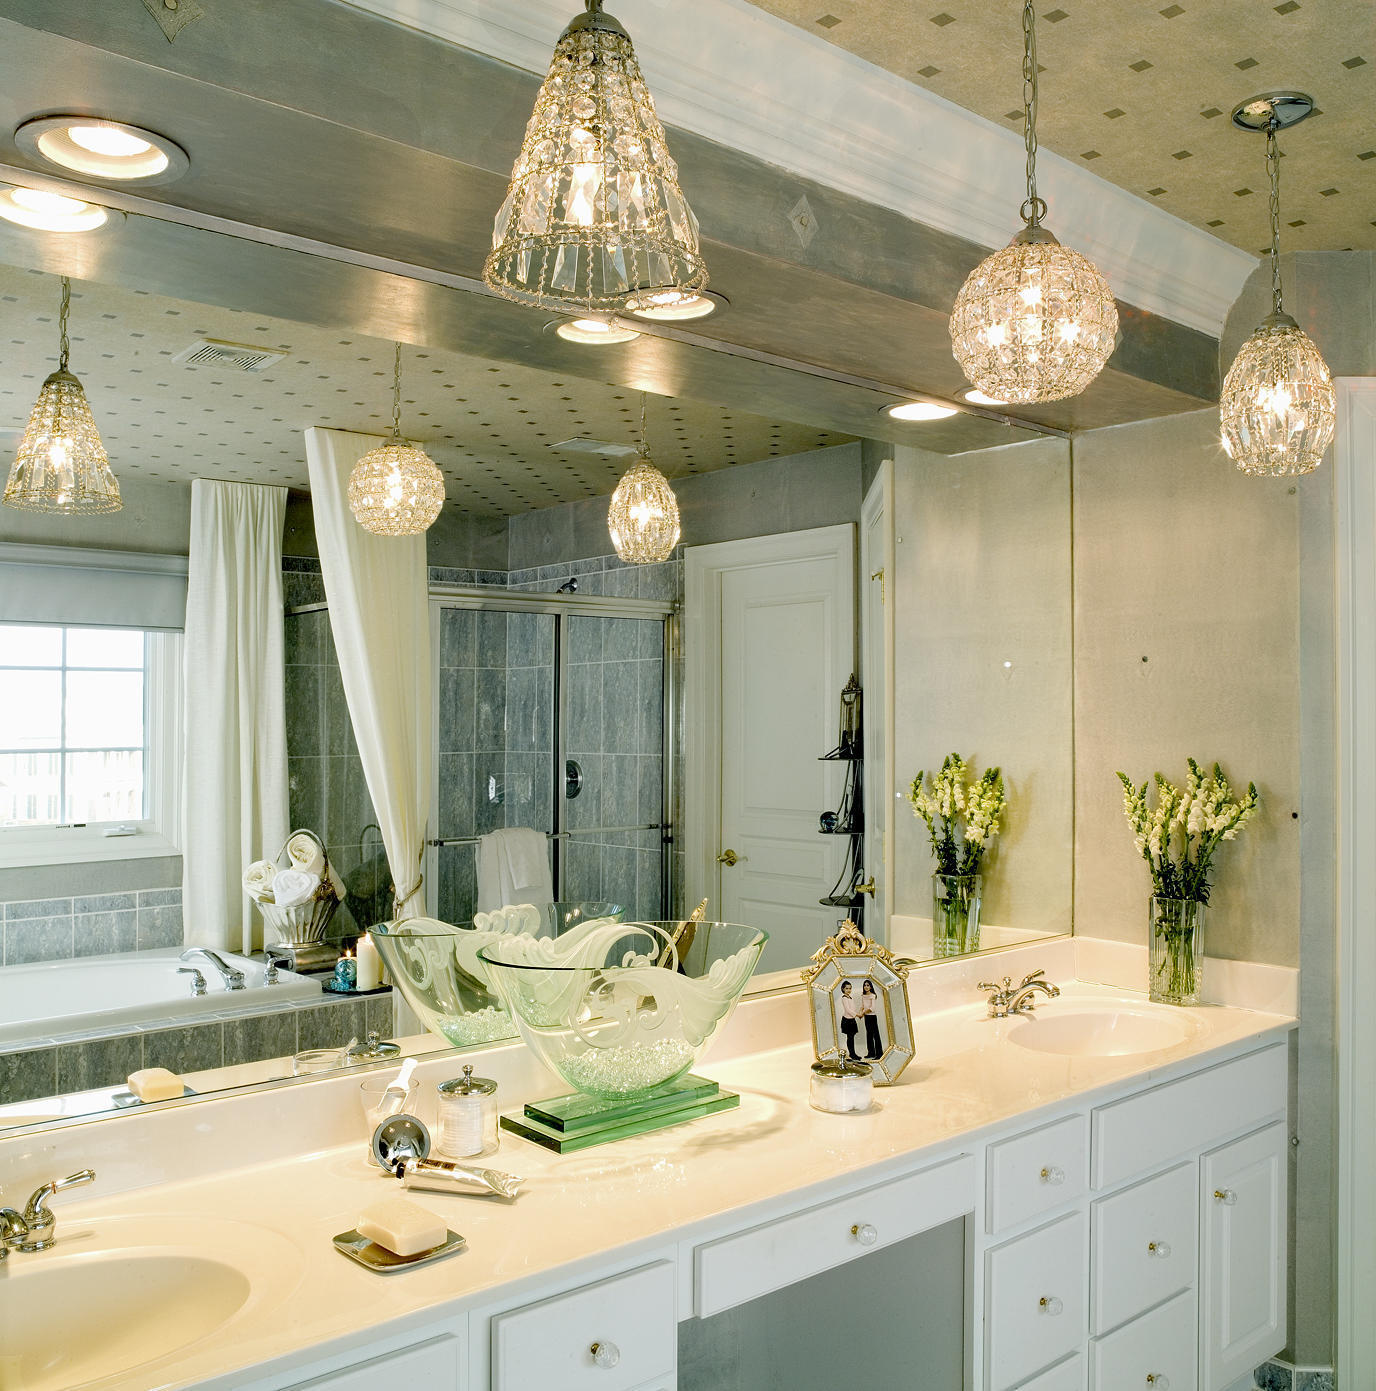 The Bathroom Ceiling Lights Ideas 3203 Bathroom Ideas